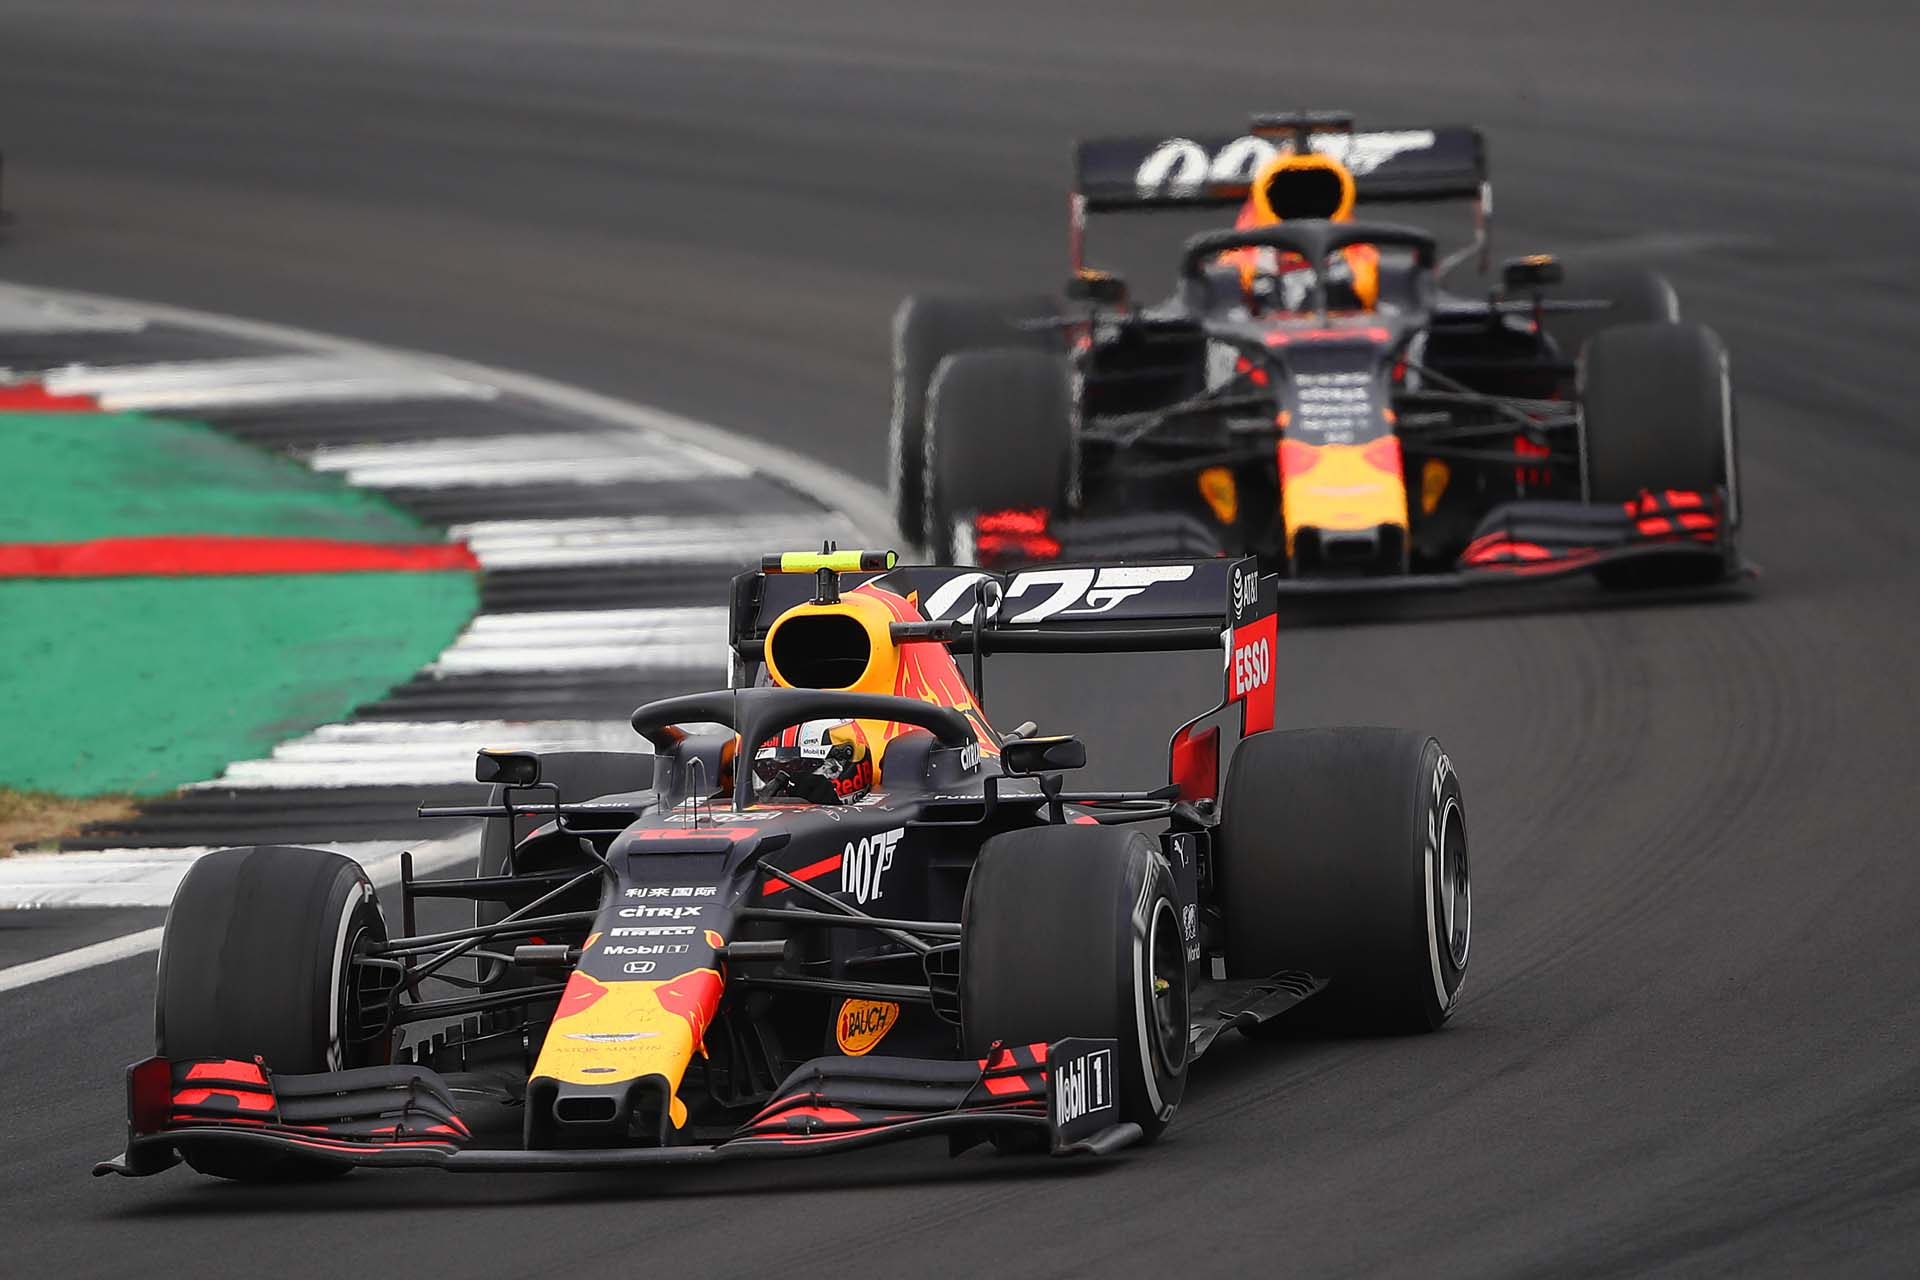 NORTHAMPTON, ENGLAND - JULY 14: Pierre Gasly of France driving the (10) Aston Martin Red Bull Racing RB15 leads Max Verstappen of the Netherlands driving the (33) Aston Martin Red Bull Racing RB15 on track during the F1 Grand Prix of Great Britain at Silverstone on July 14, 2019 in Northampton, England. (Photo by Bryn Lennon/Getty Images) // Getty Images / Red Bull Content Pool  // AP-1ZXU5X2KW2111 // Usage for editorial use only // Please go to www.redbullcontentpool.com for further information. //